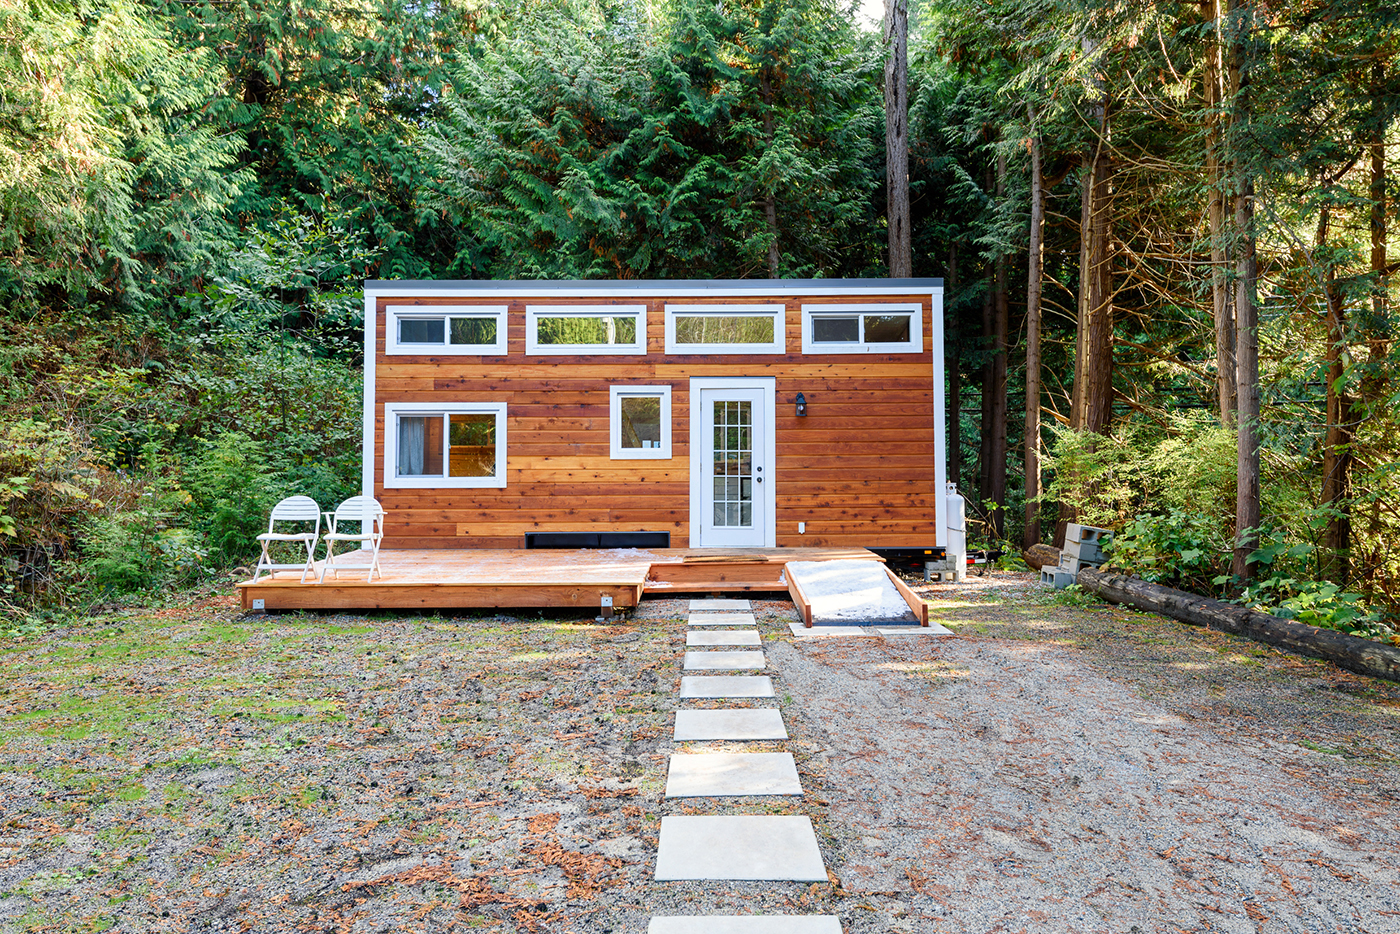 Both Seniors and Millennials Eager to Follow Tiny House Trend Thumbnail